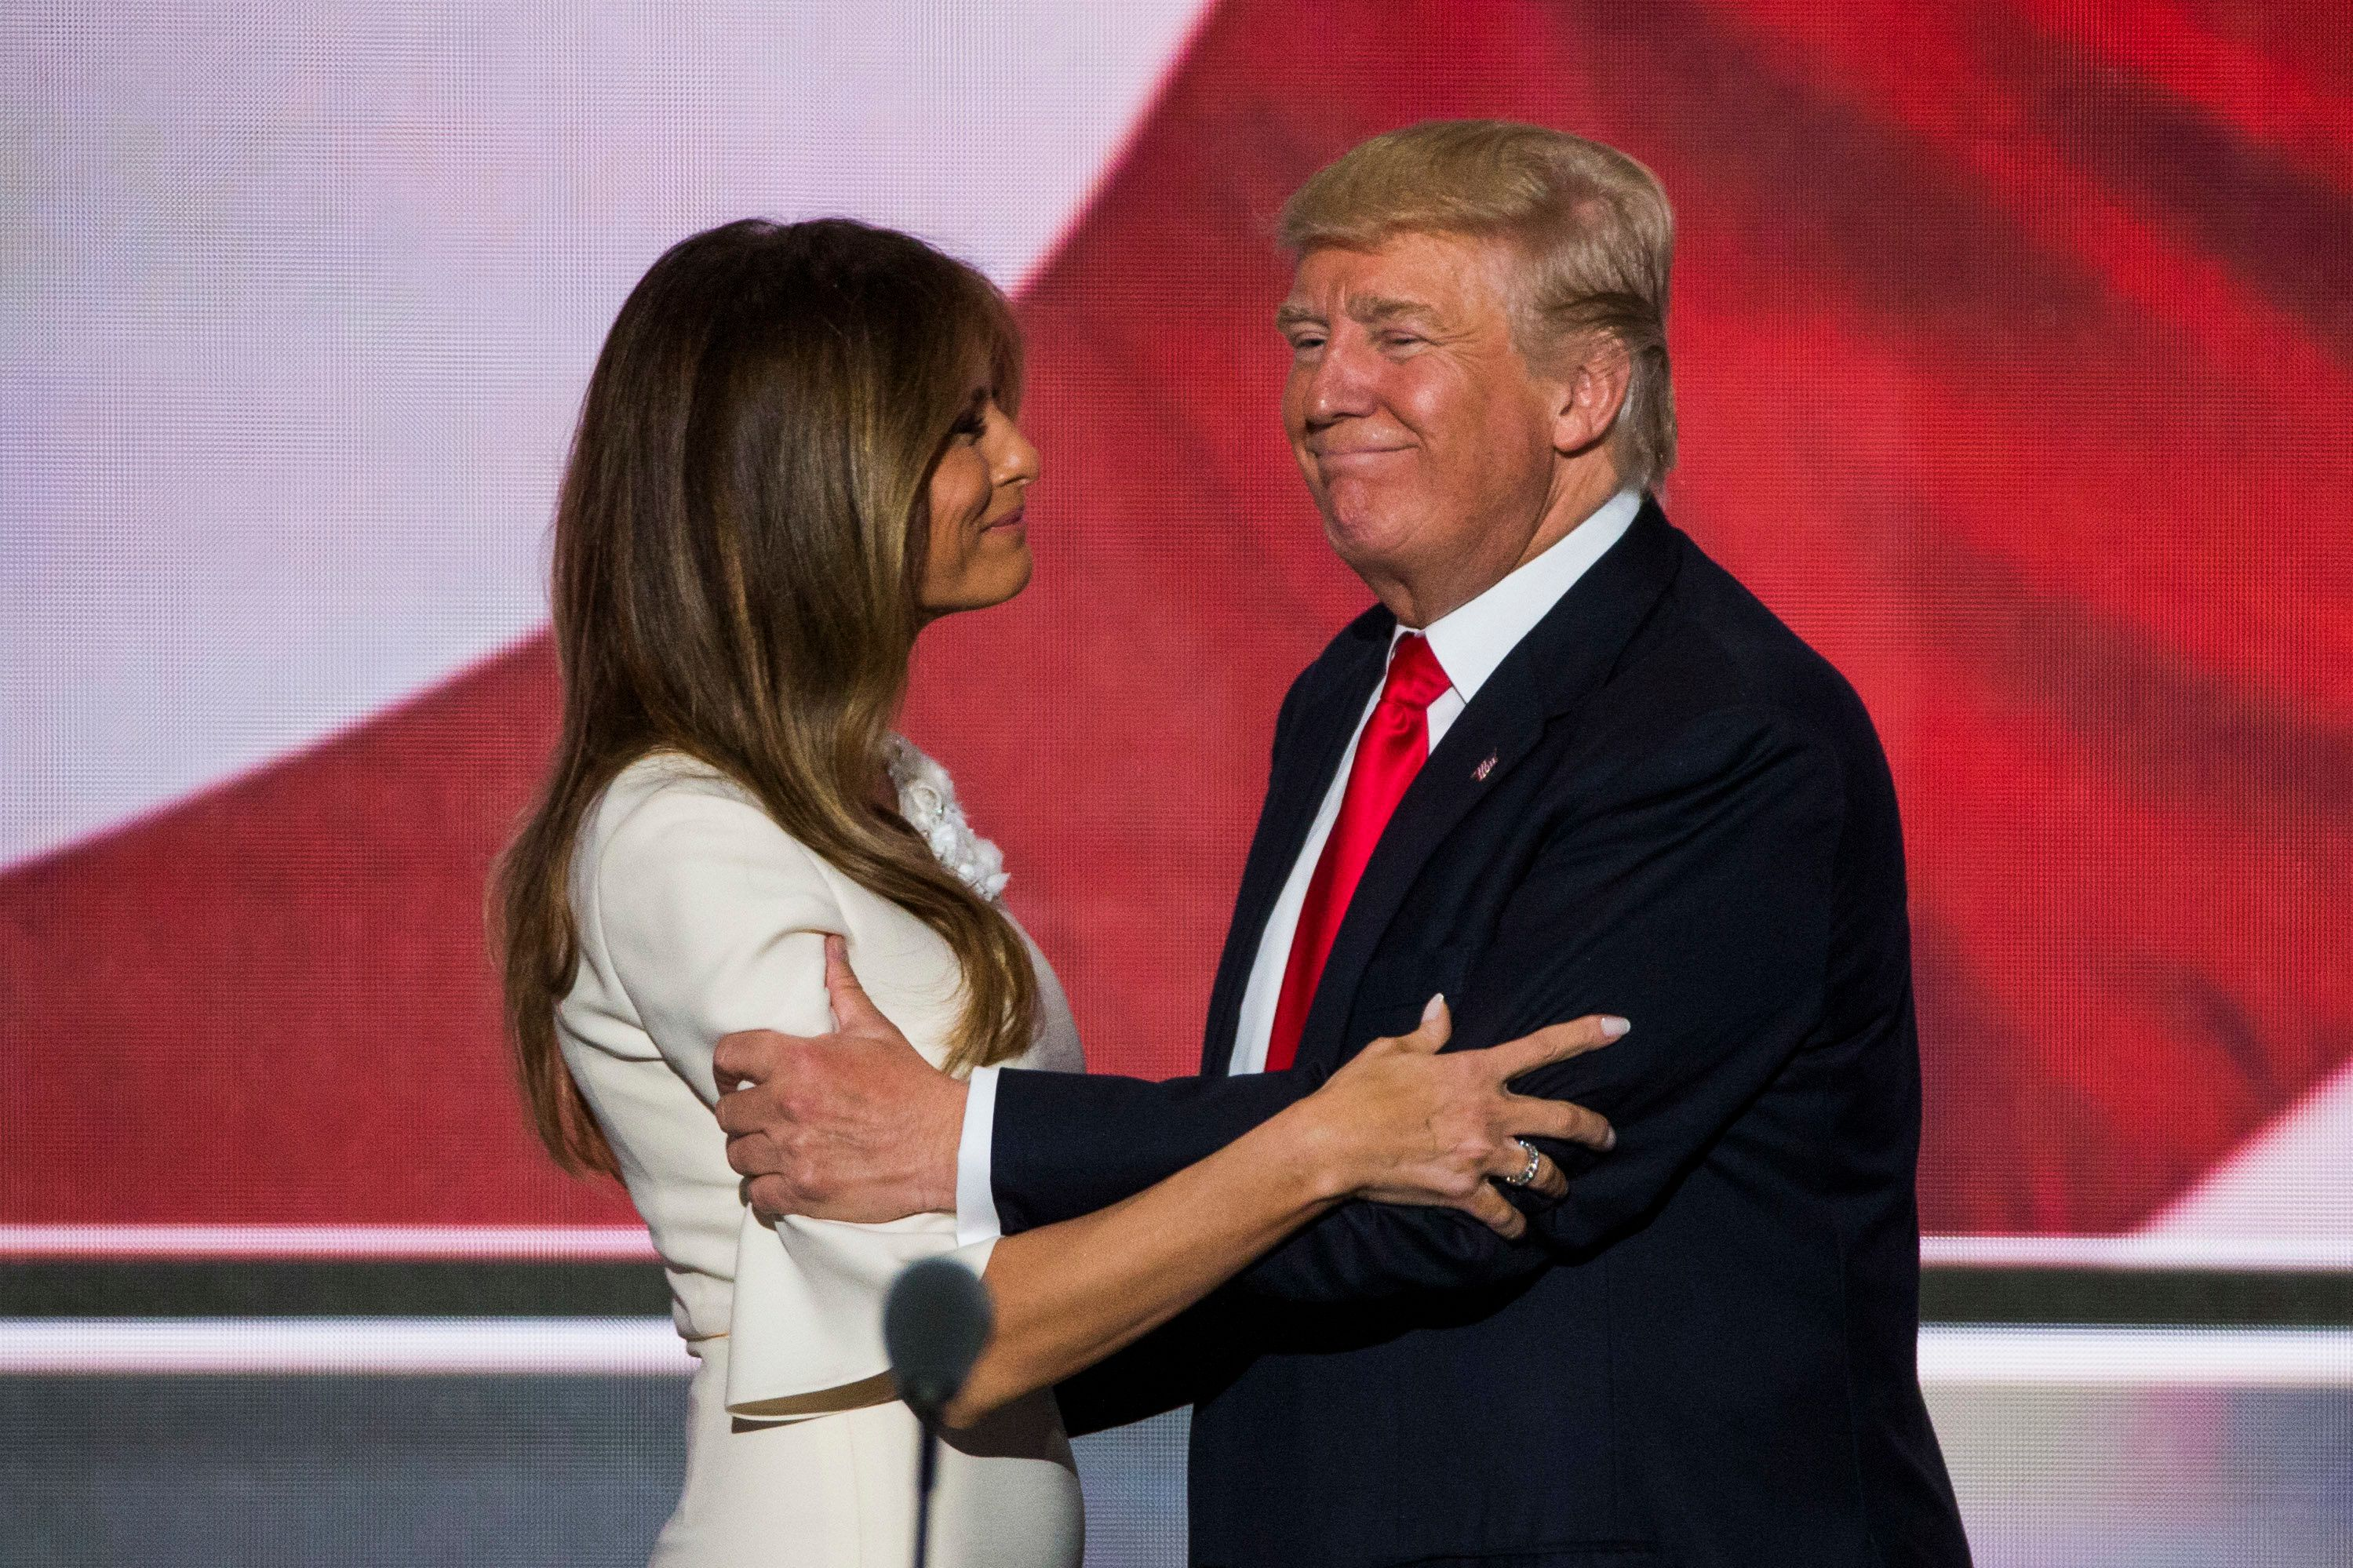 Republican nominee Donald Trump greets his wife Melania after his keynote address to the Republican Convention, July 21, 2016